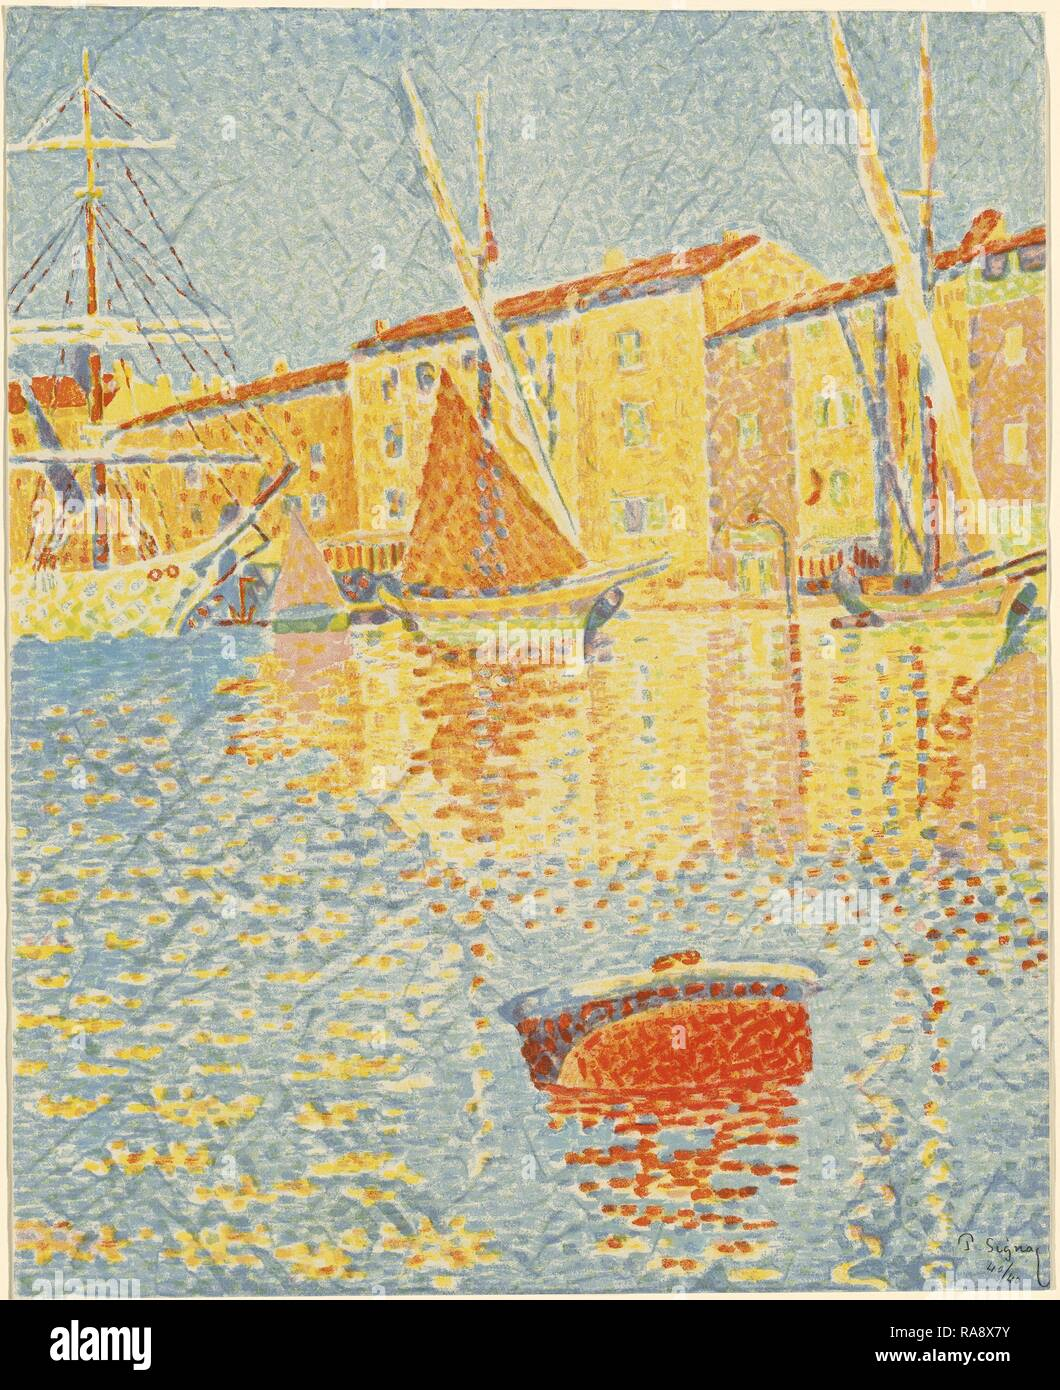 Paul Signac (French, 1863 - 1935), The Buoy (La bouée), 1894, 6-color lithograph. Reimagined by Gibon. Classic art reimagined Stock Photo